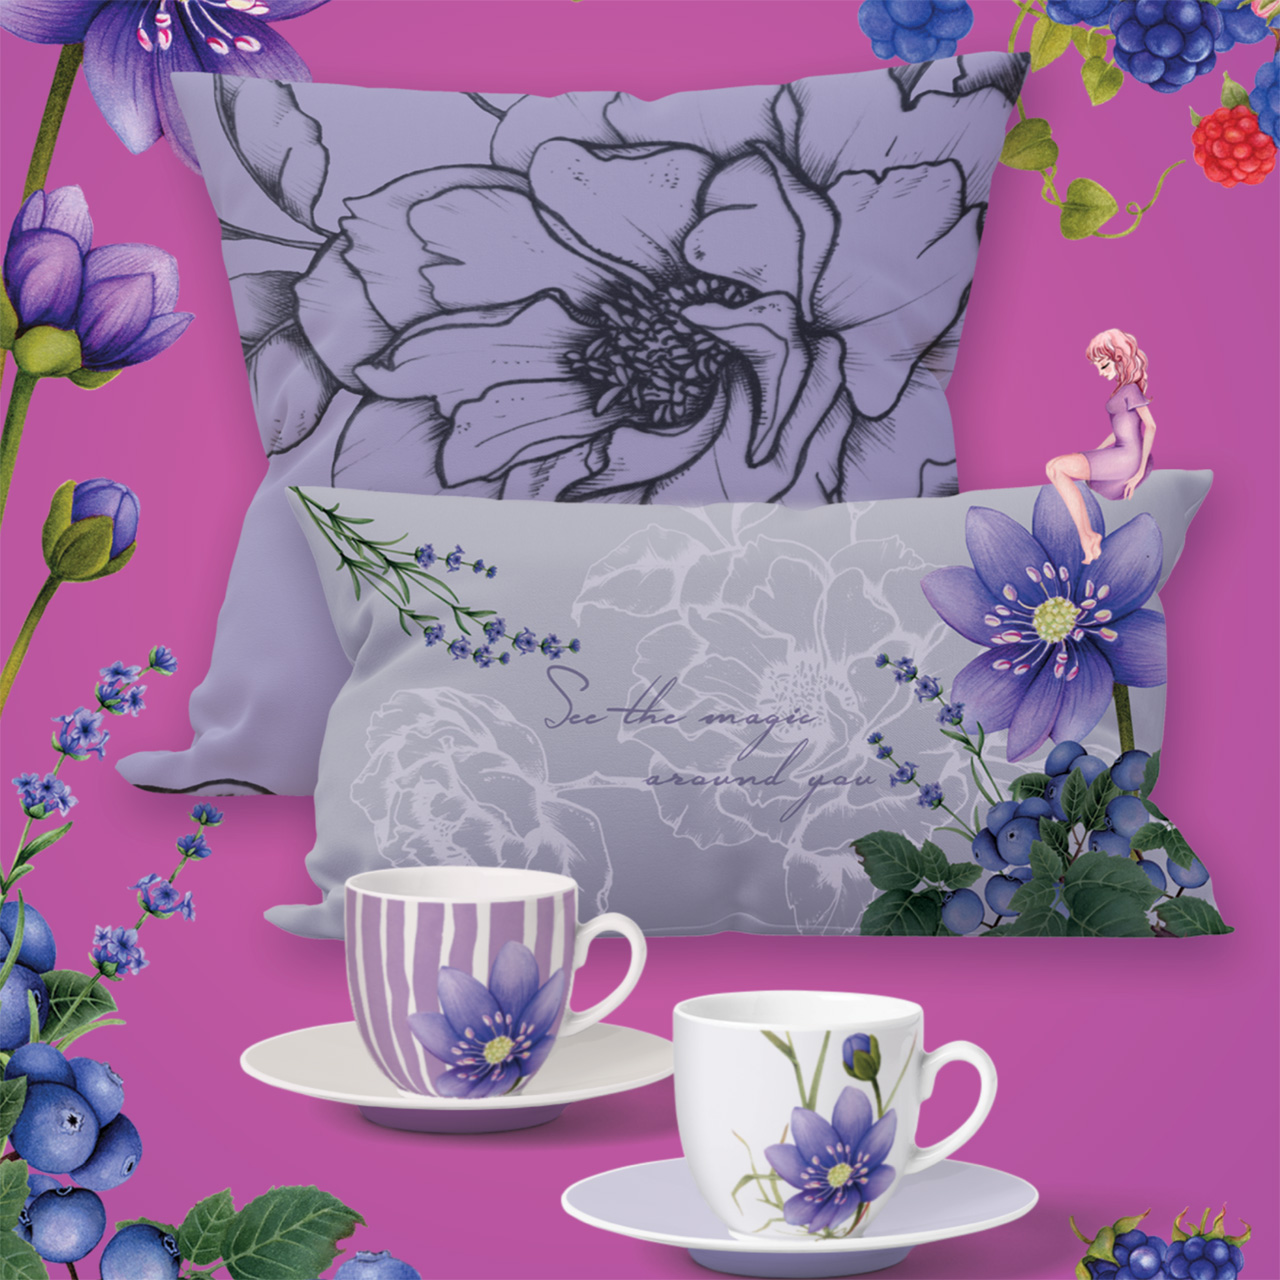 Yume wildberry home collection